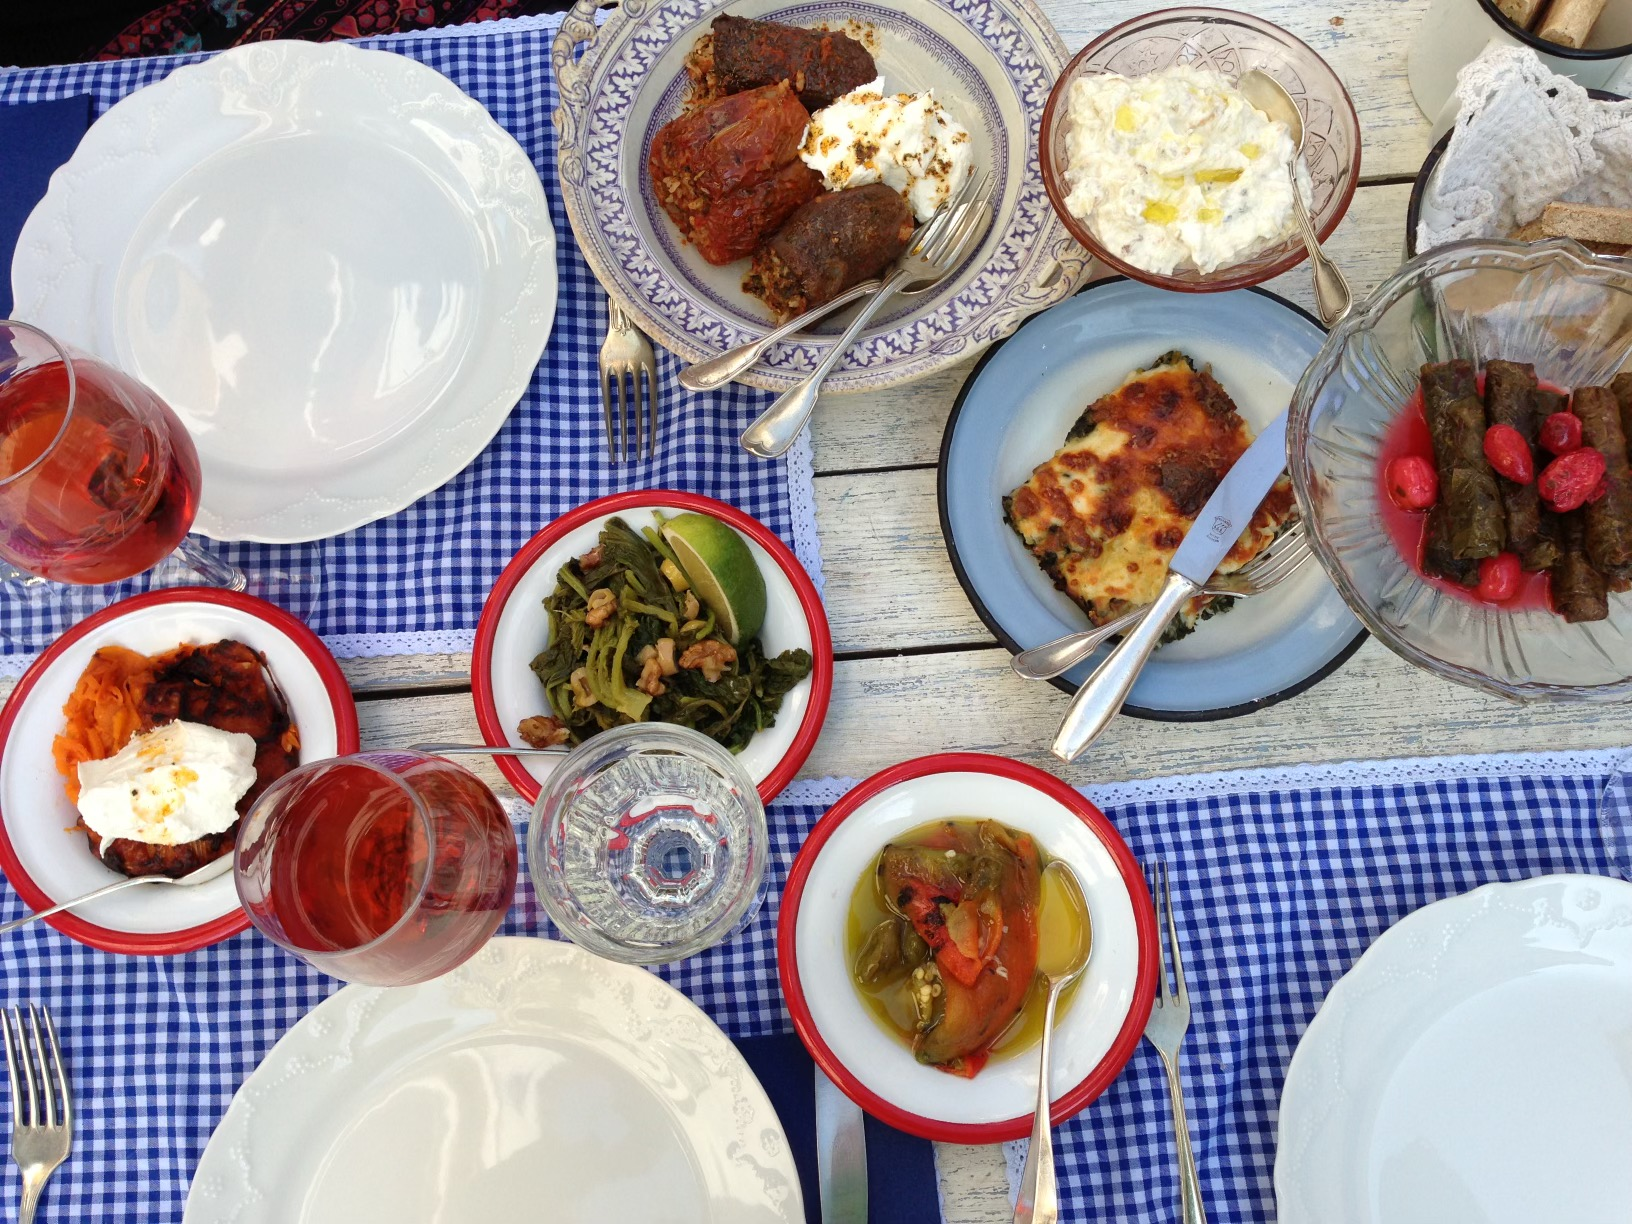 A table filled with Turkish Meze, small plates